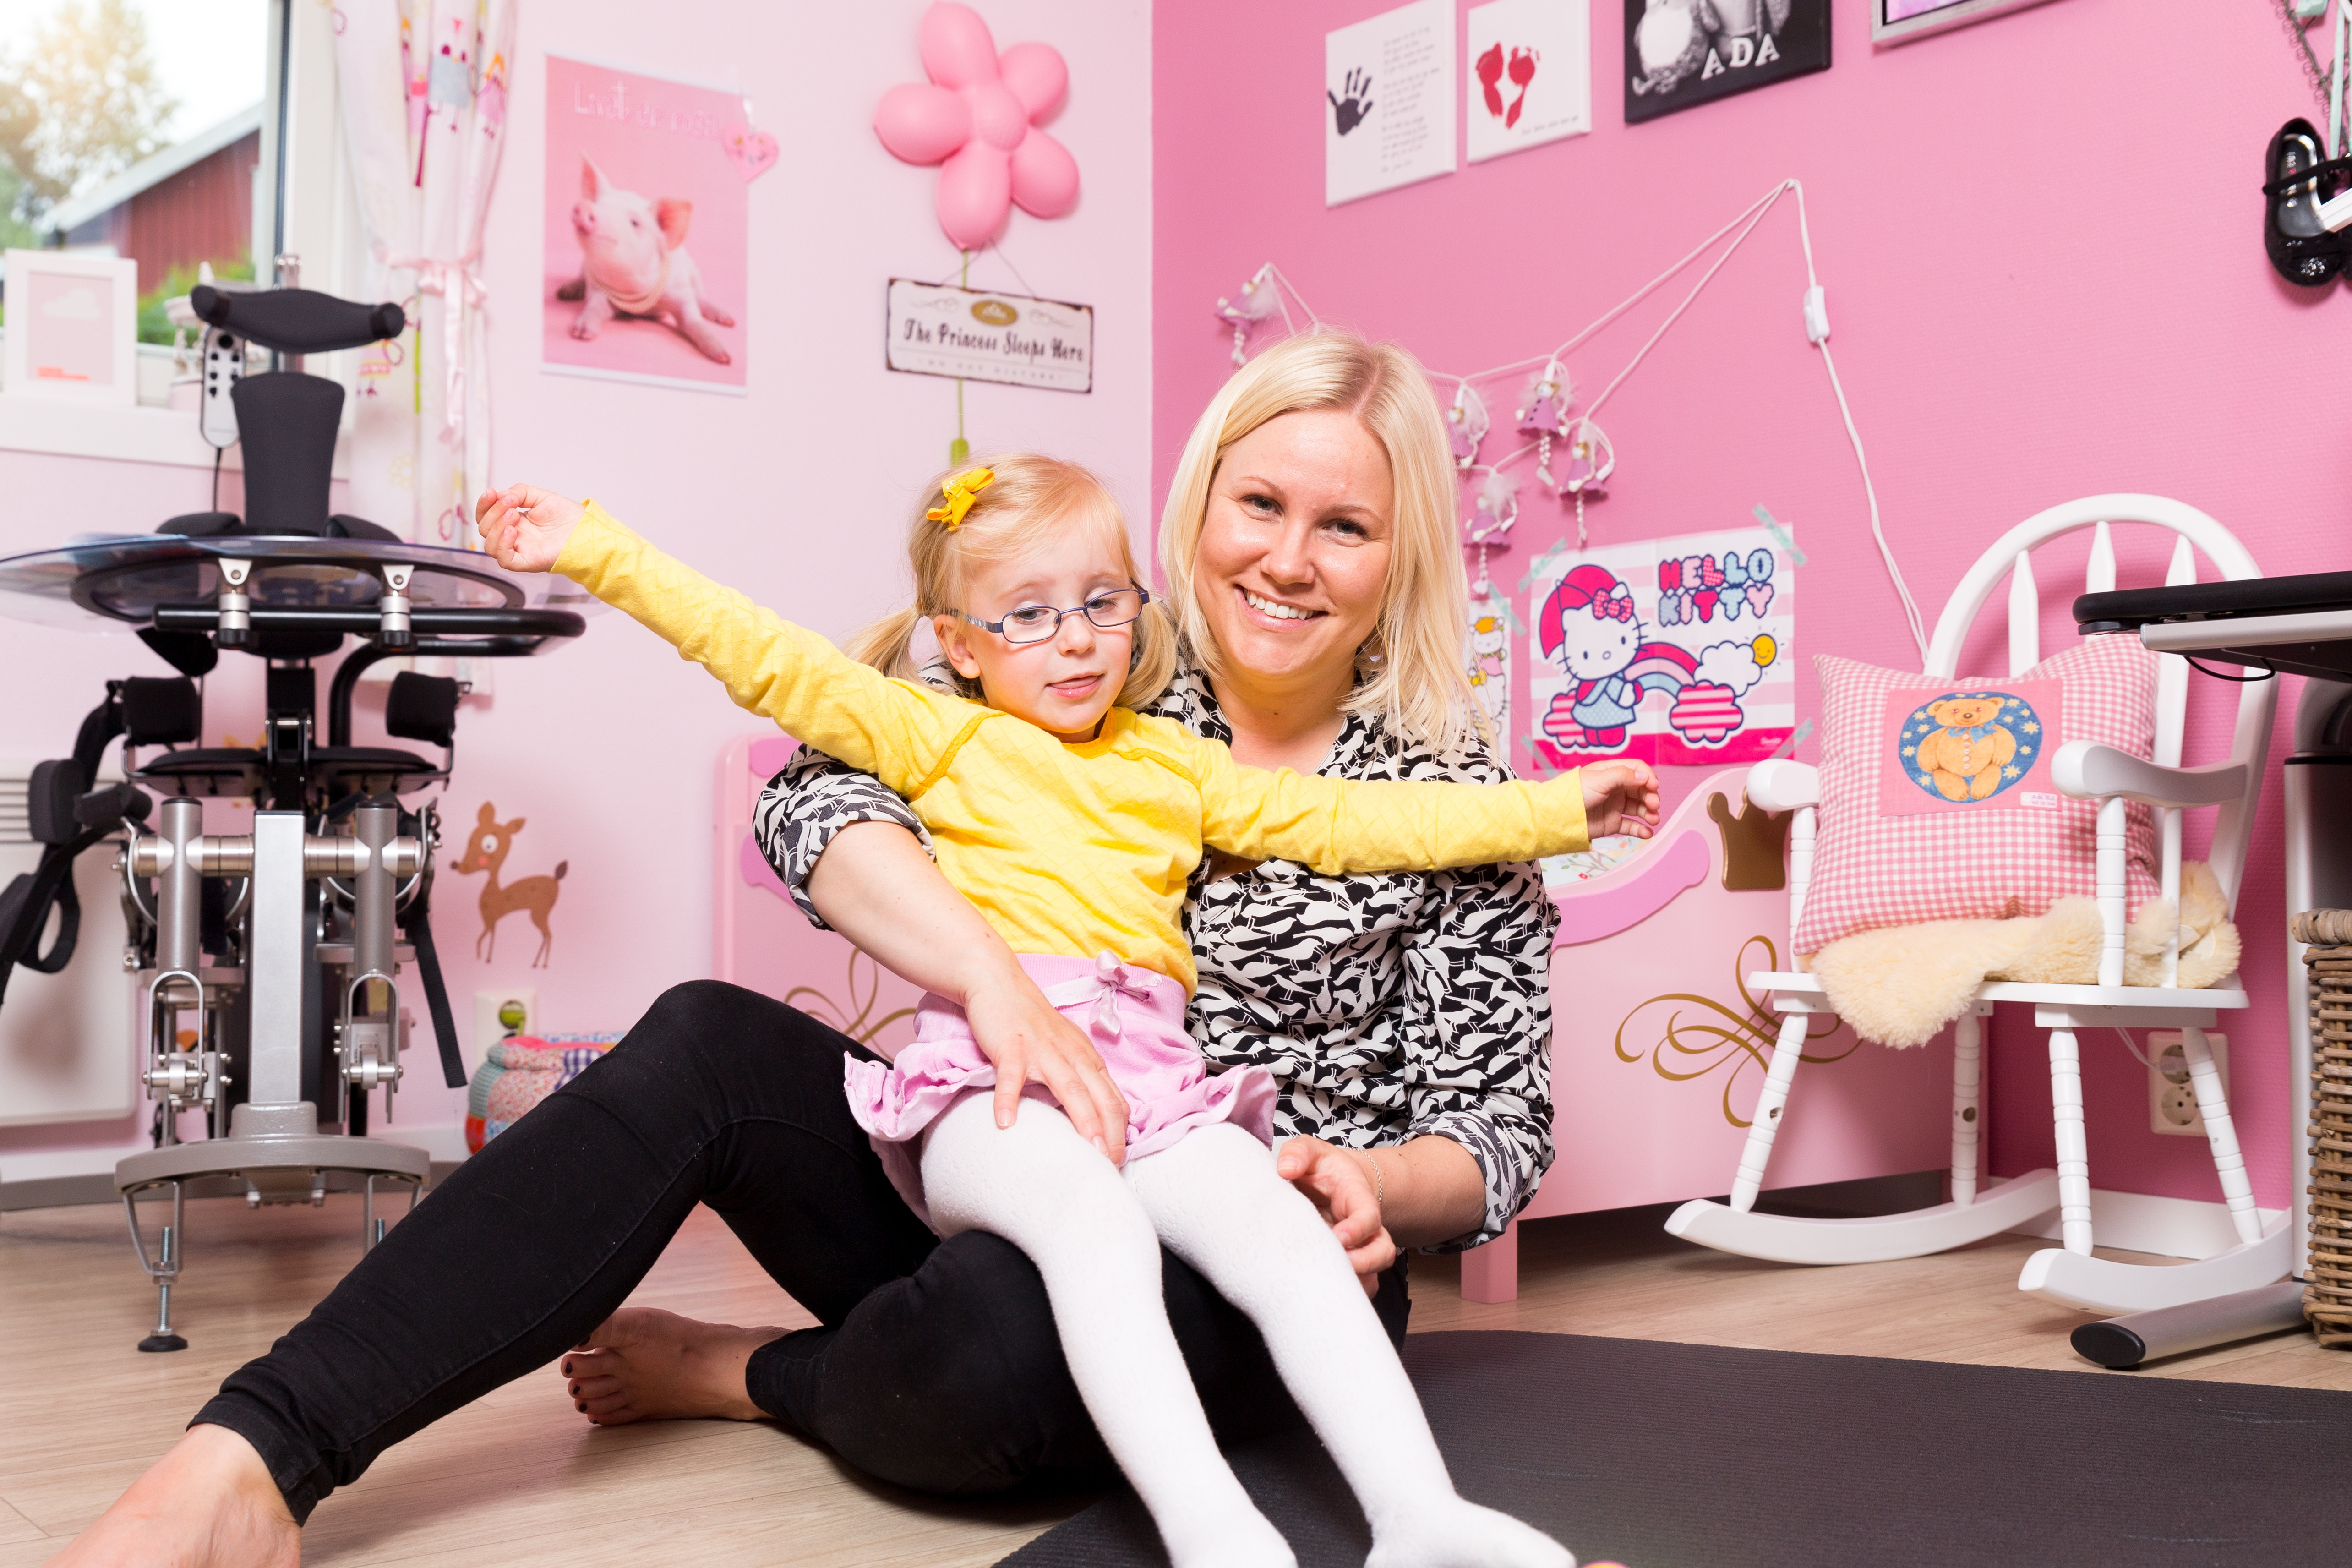 How To Adapt Your Home For a Child With Disabilities